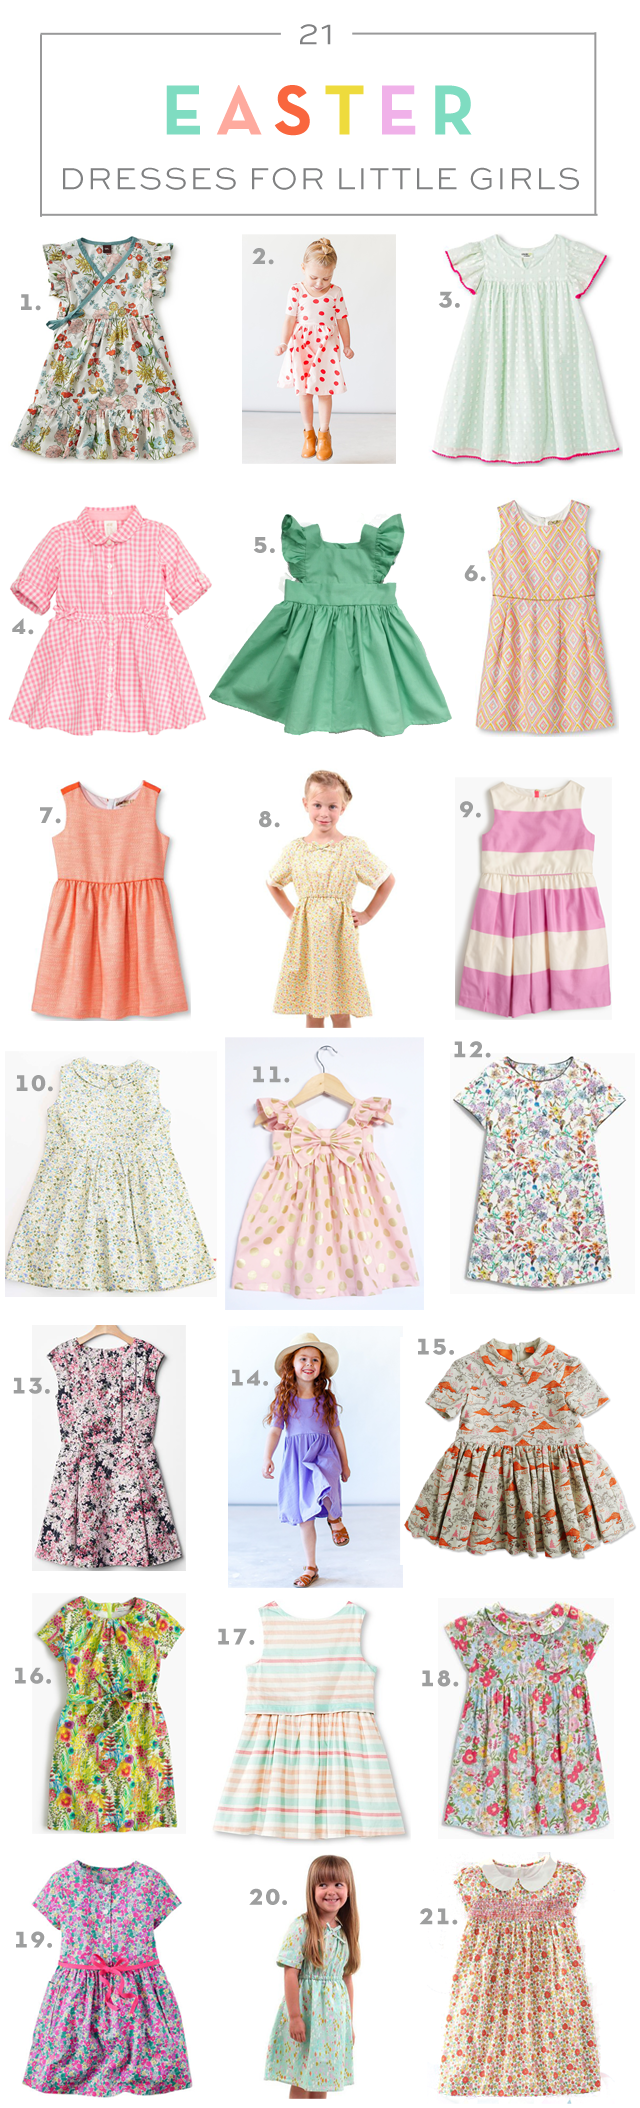 21 Easter Dresses for Little Girls via armelleblog.com